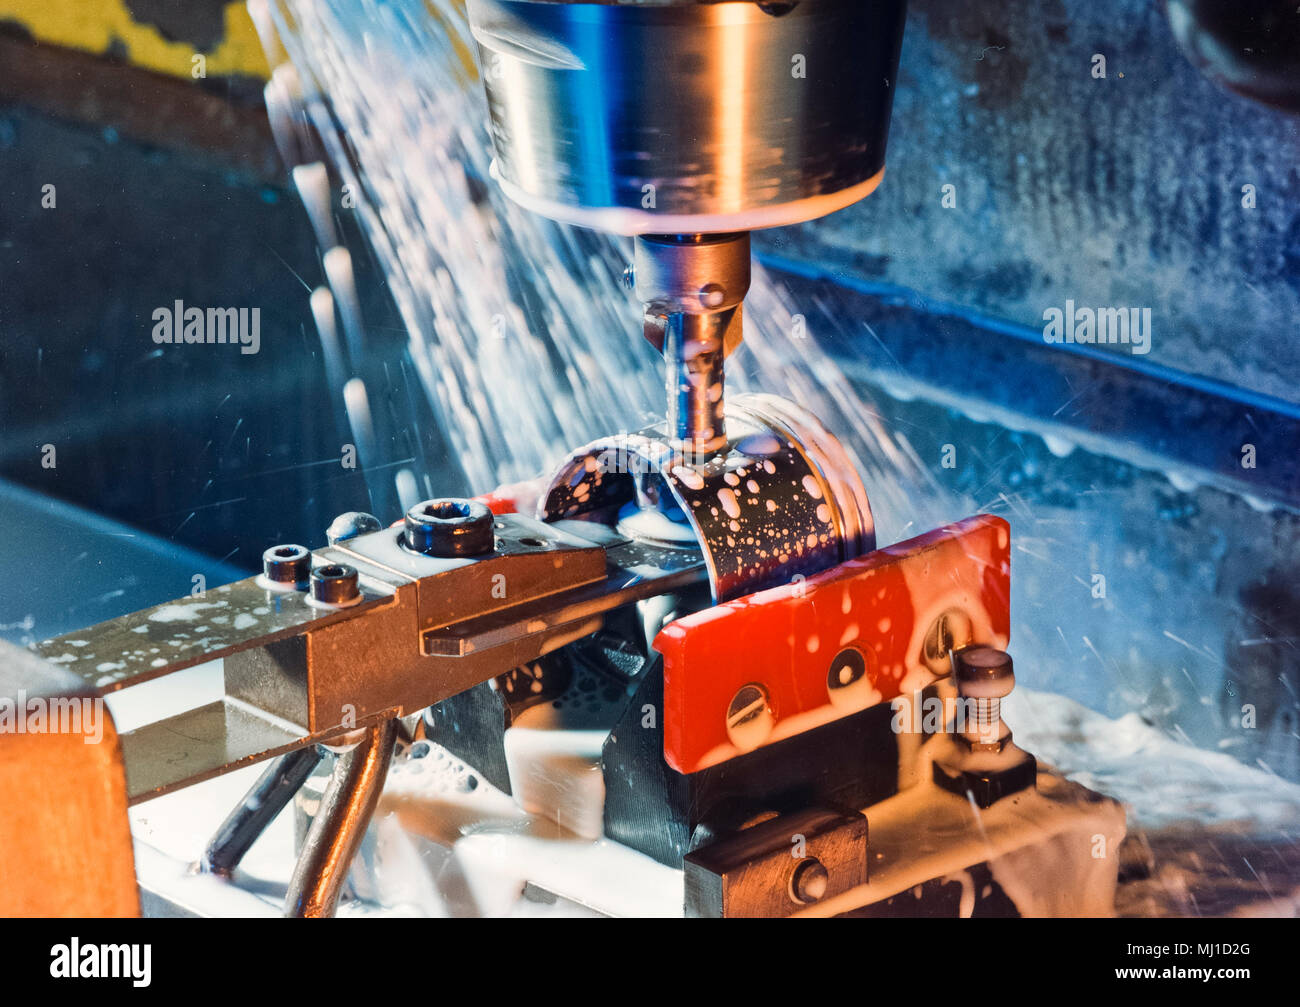 drilling machine in action - Stock Image